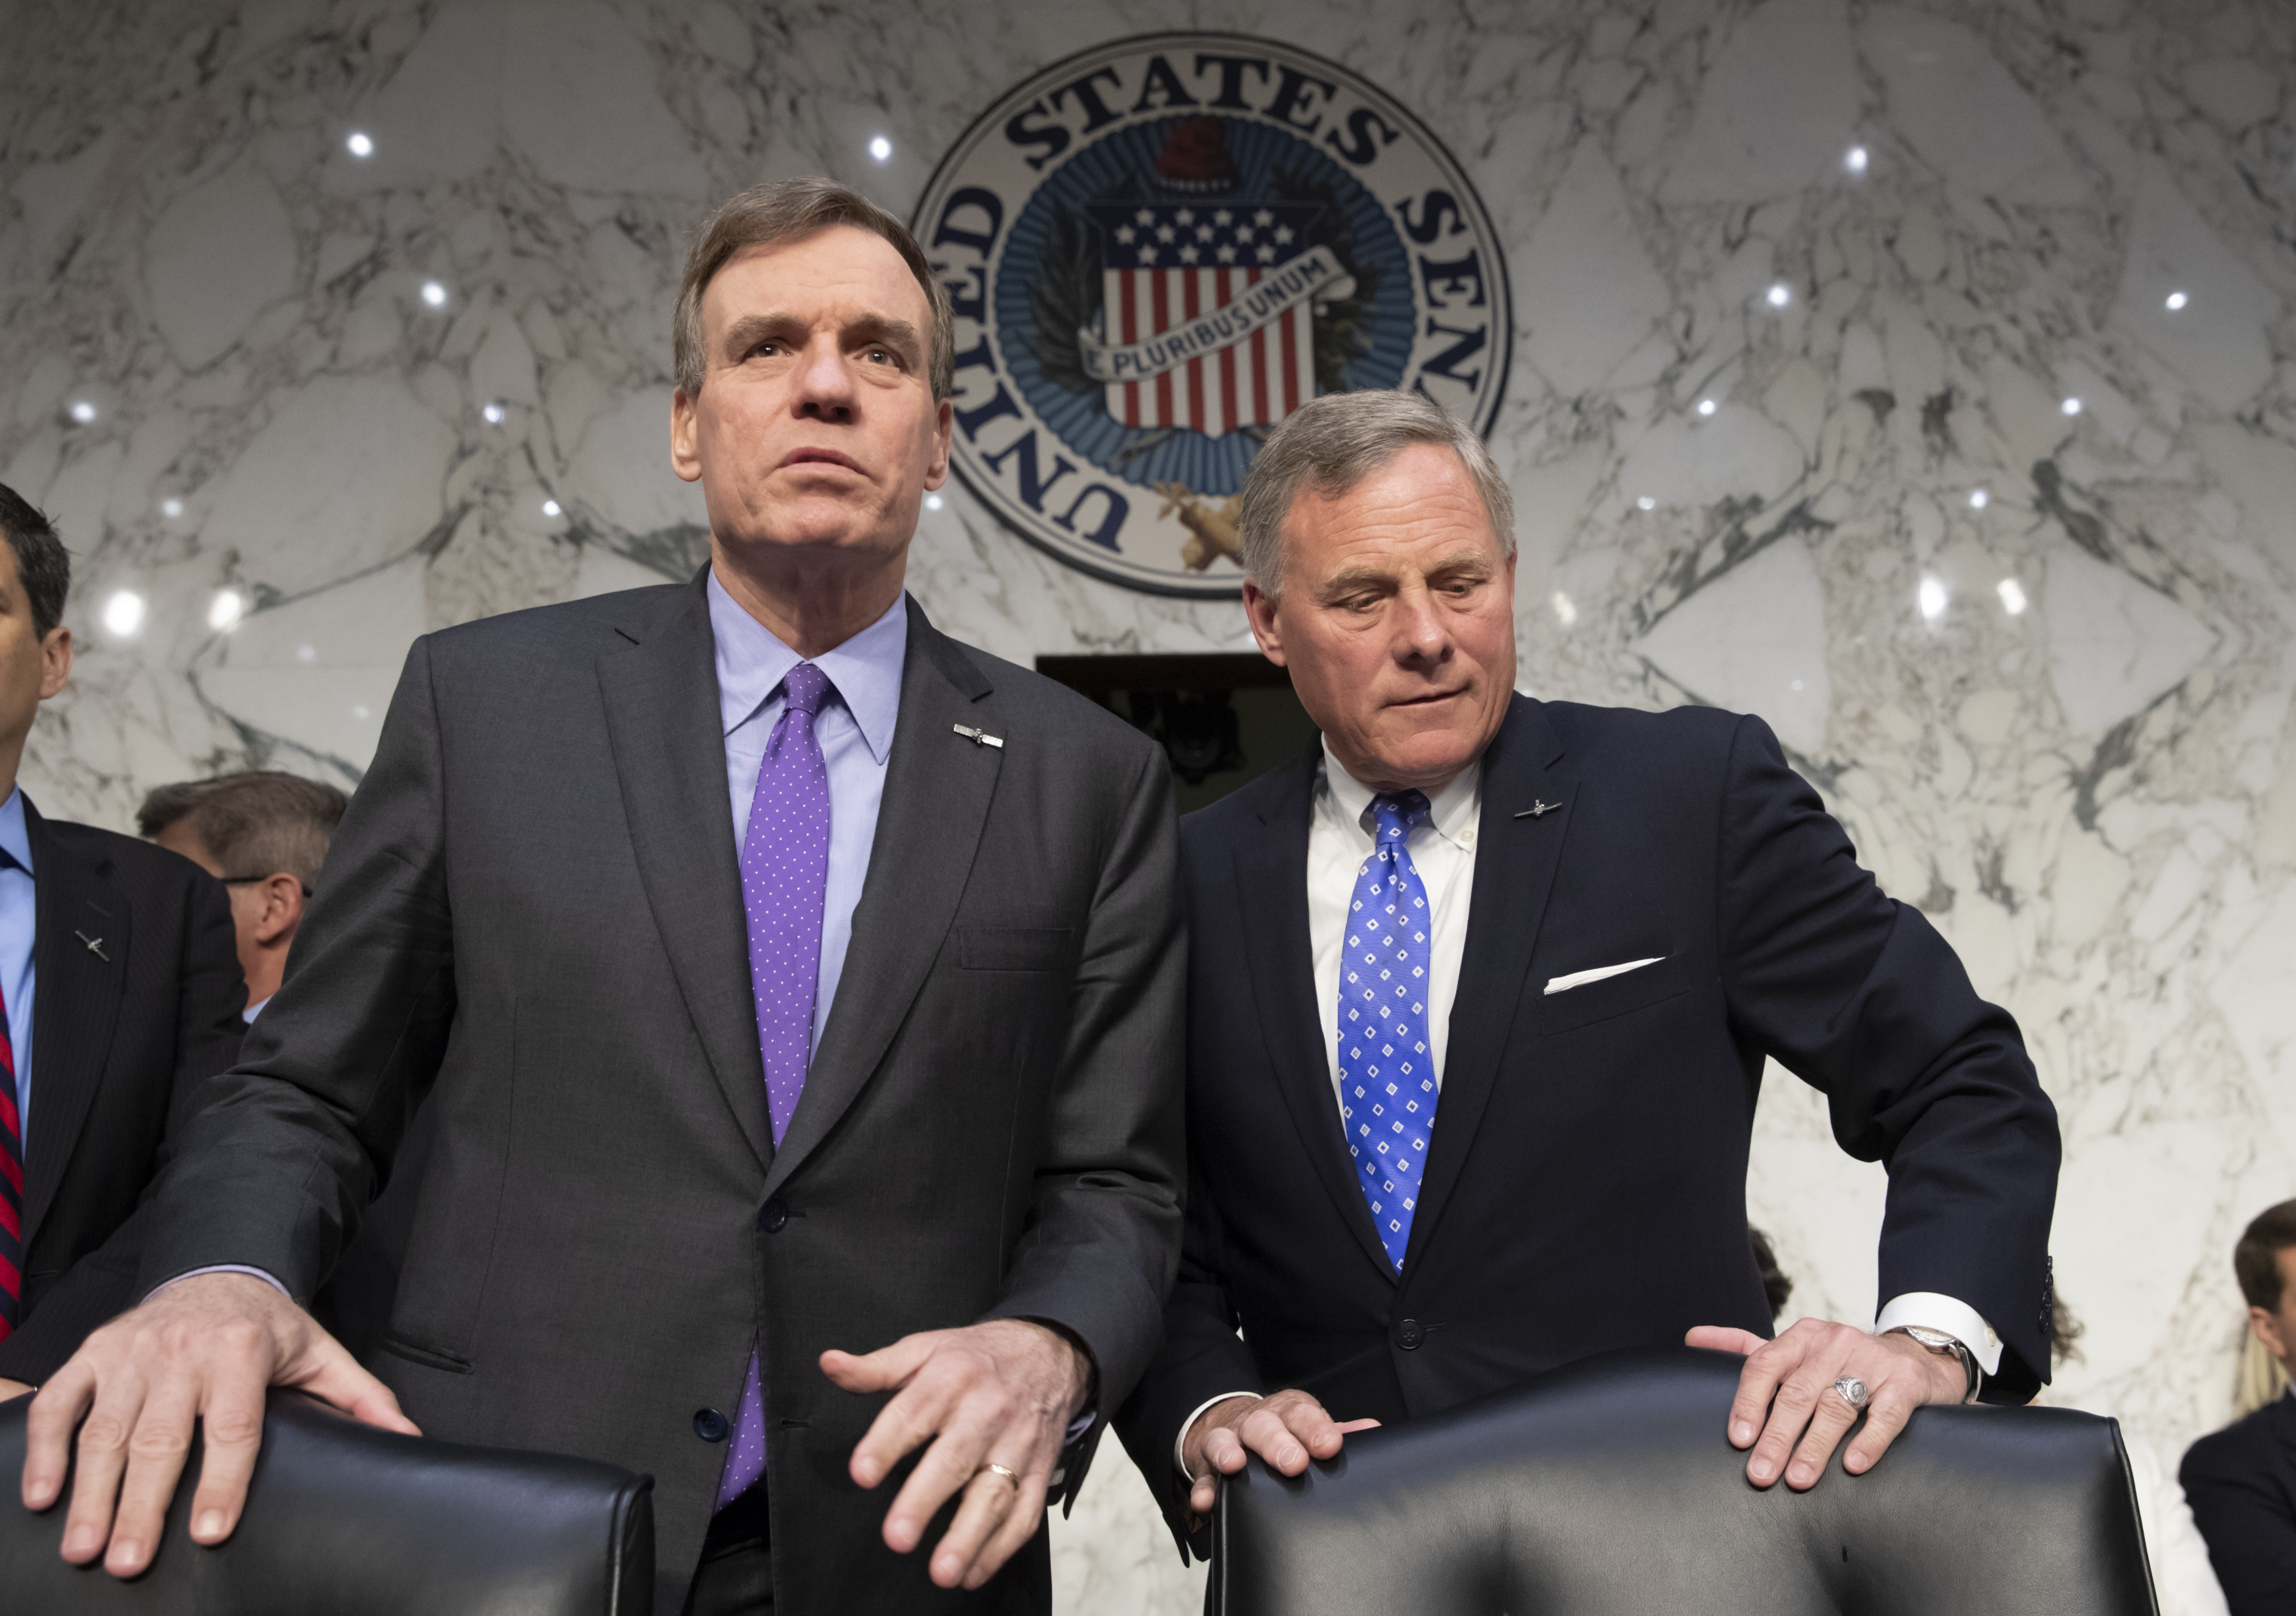 FILE - Senate Intelligence Committee Vice Chairman Mark Warner, D-Va., left, and Sen. Richard Burr, R-N.C., the panel chairman, are pictured prior to a hearing on Capitol Hill in Washington, May 9, 2018.